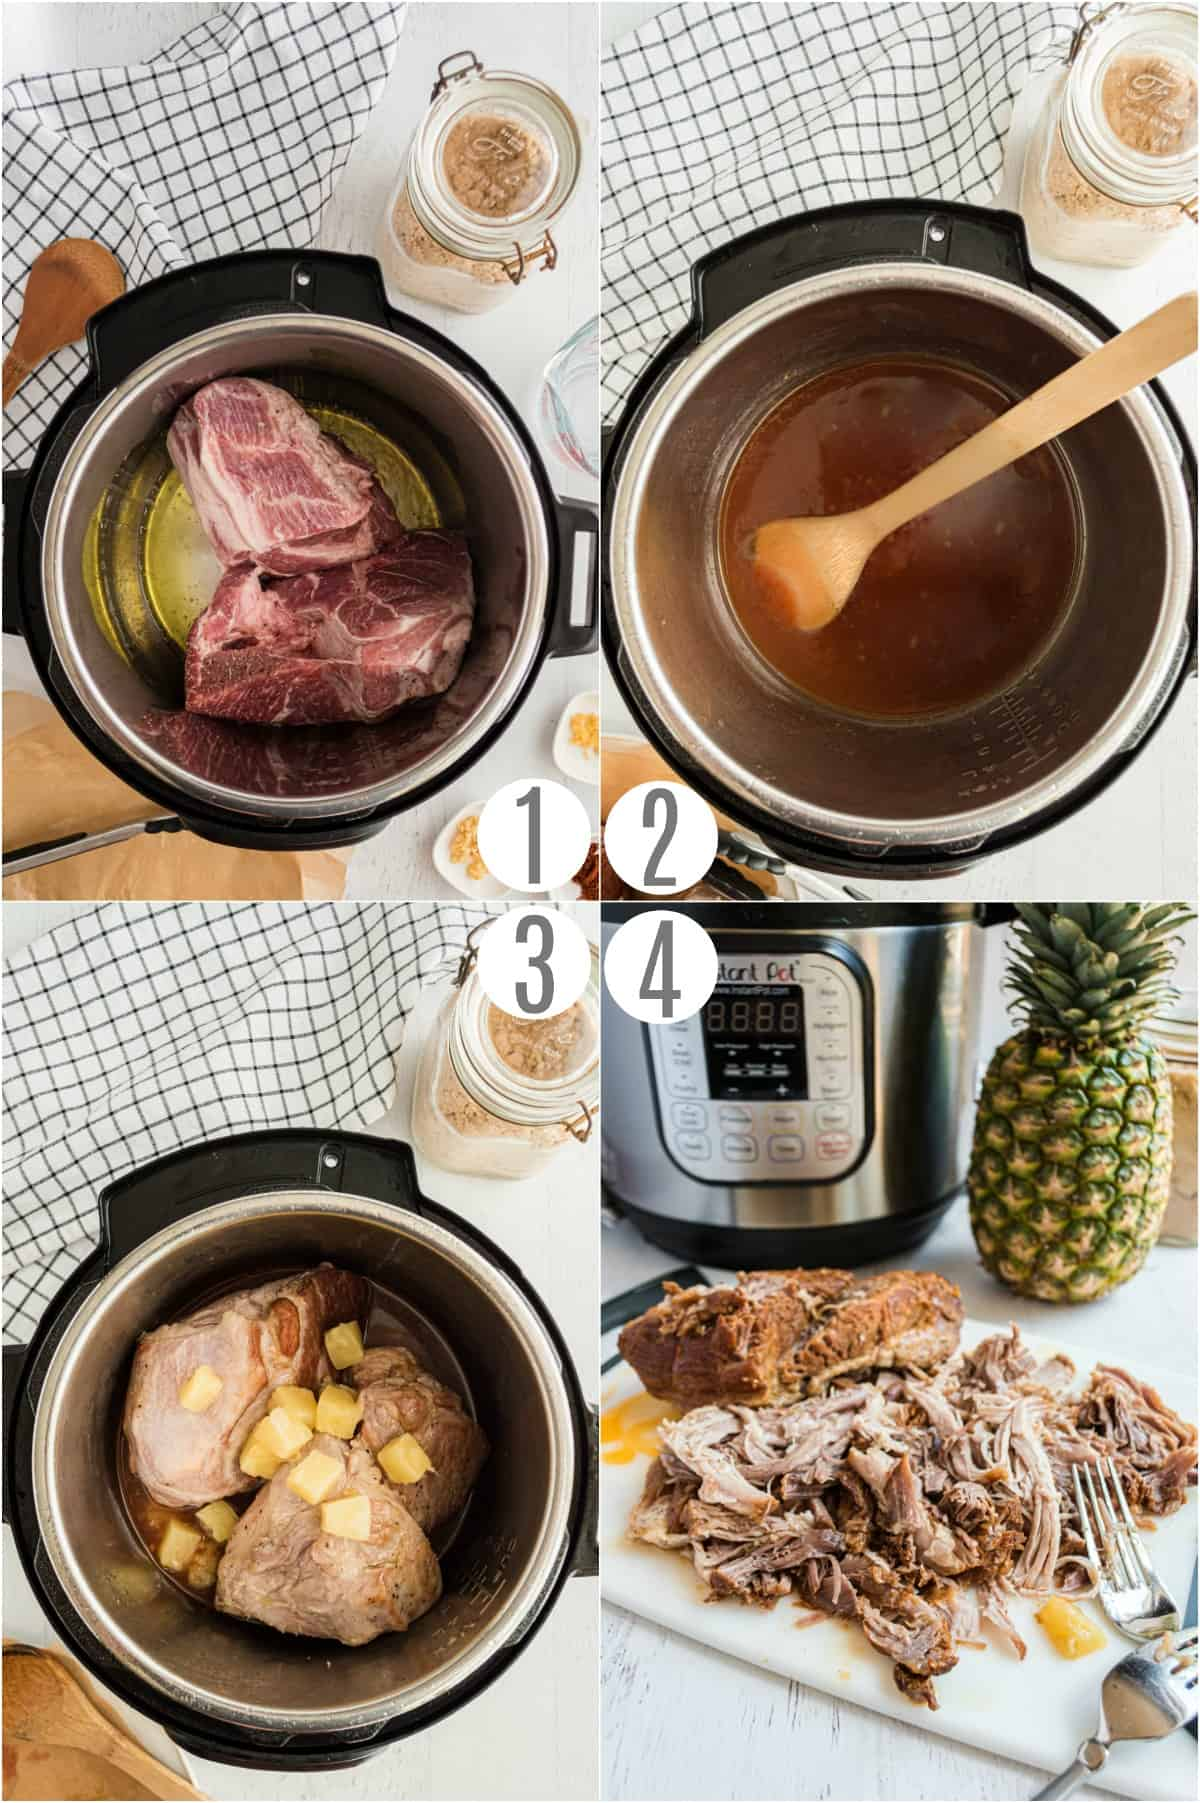 Step by step photos showing how to make Instant Pot Hawaiian Pulled Pork.